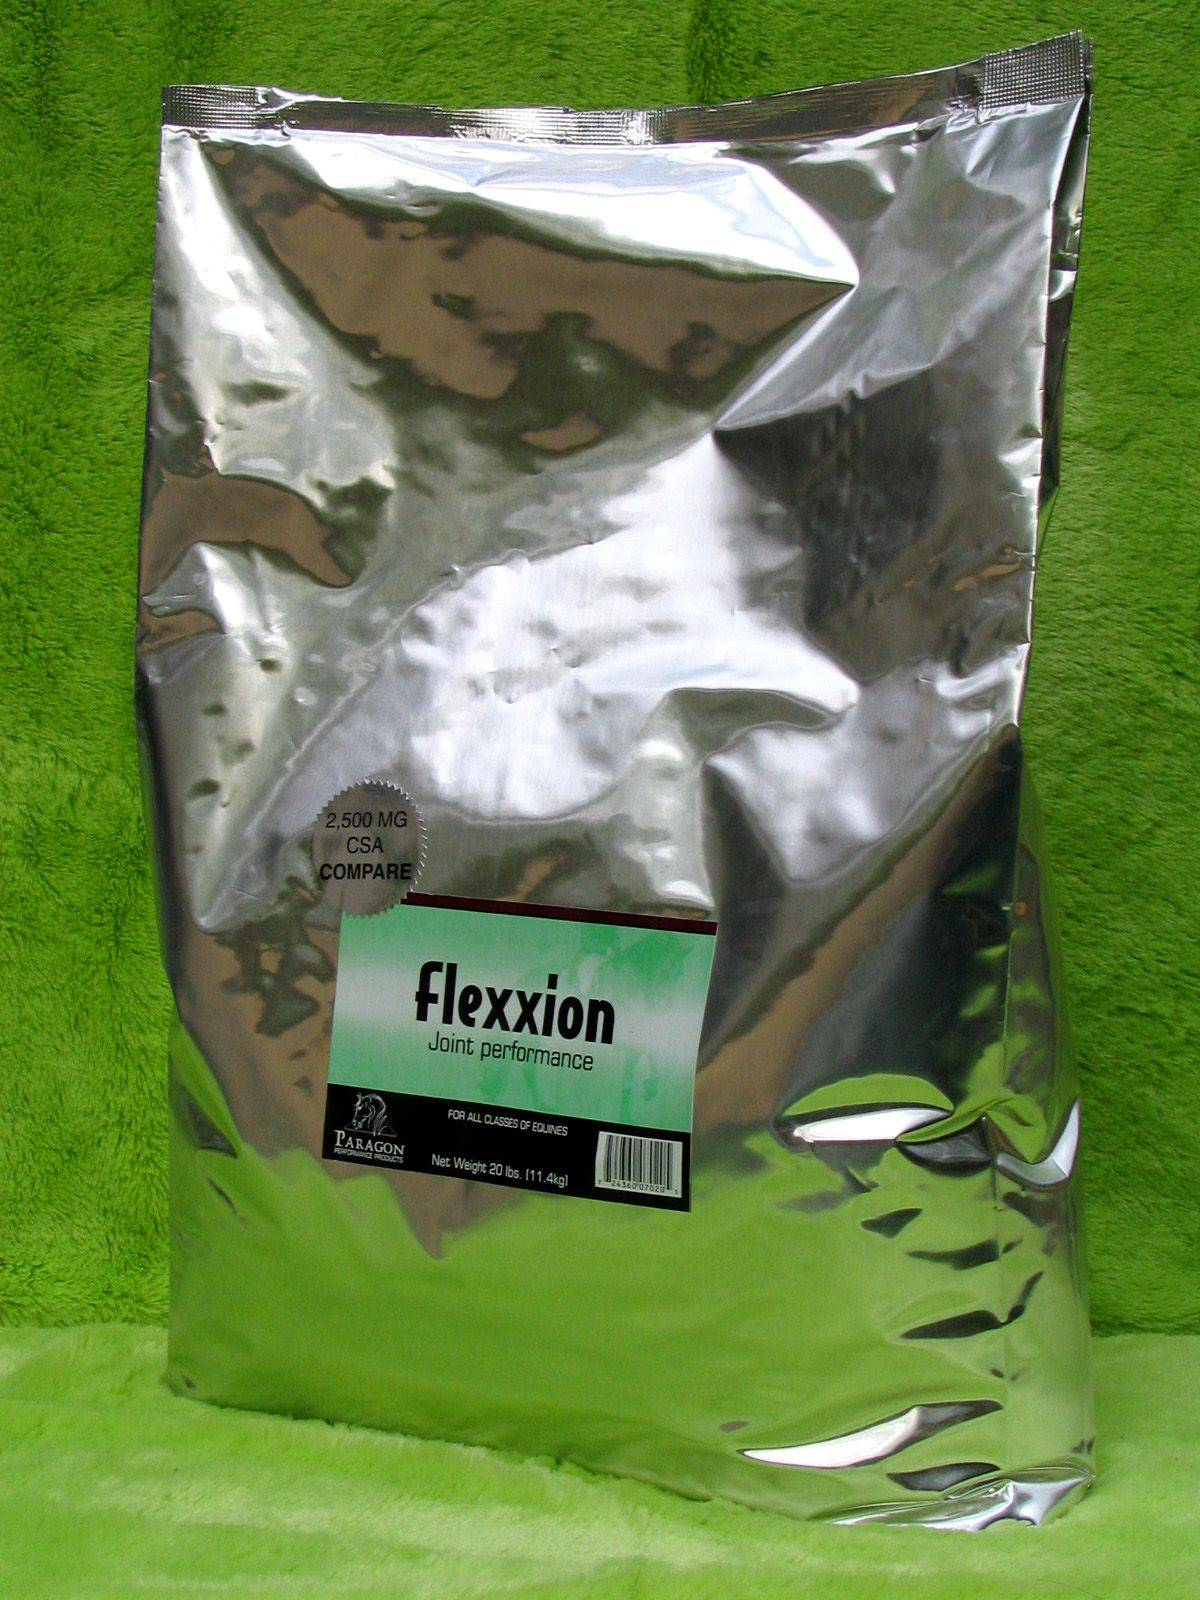 Equilife Flexxion CSA 20 lb